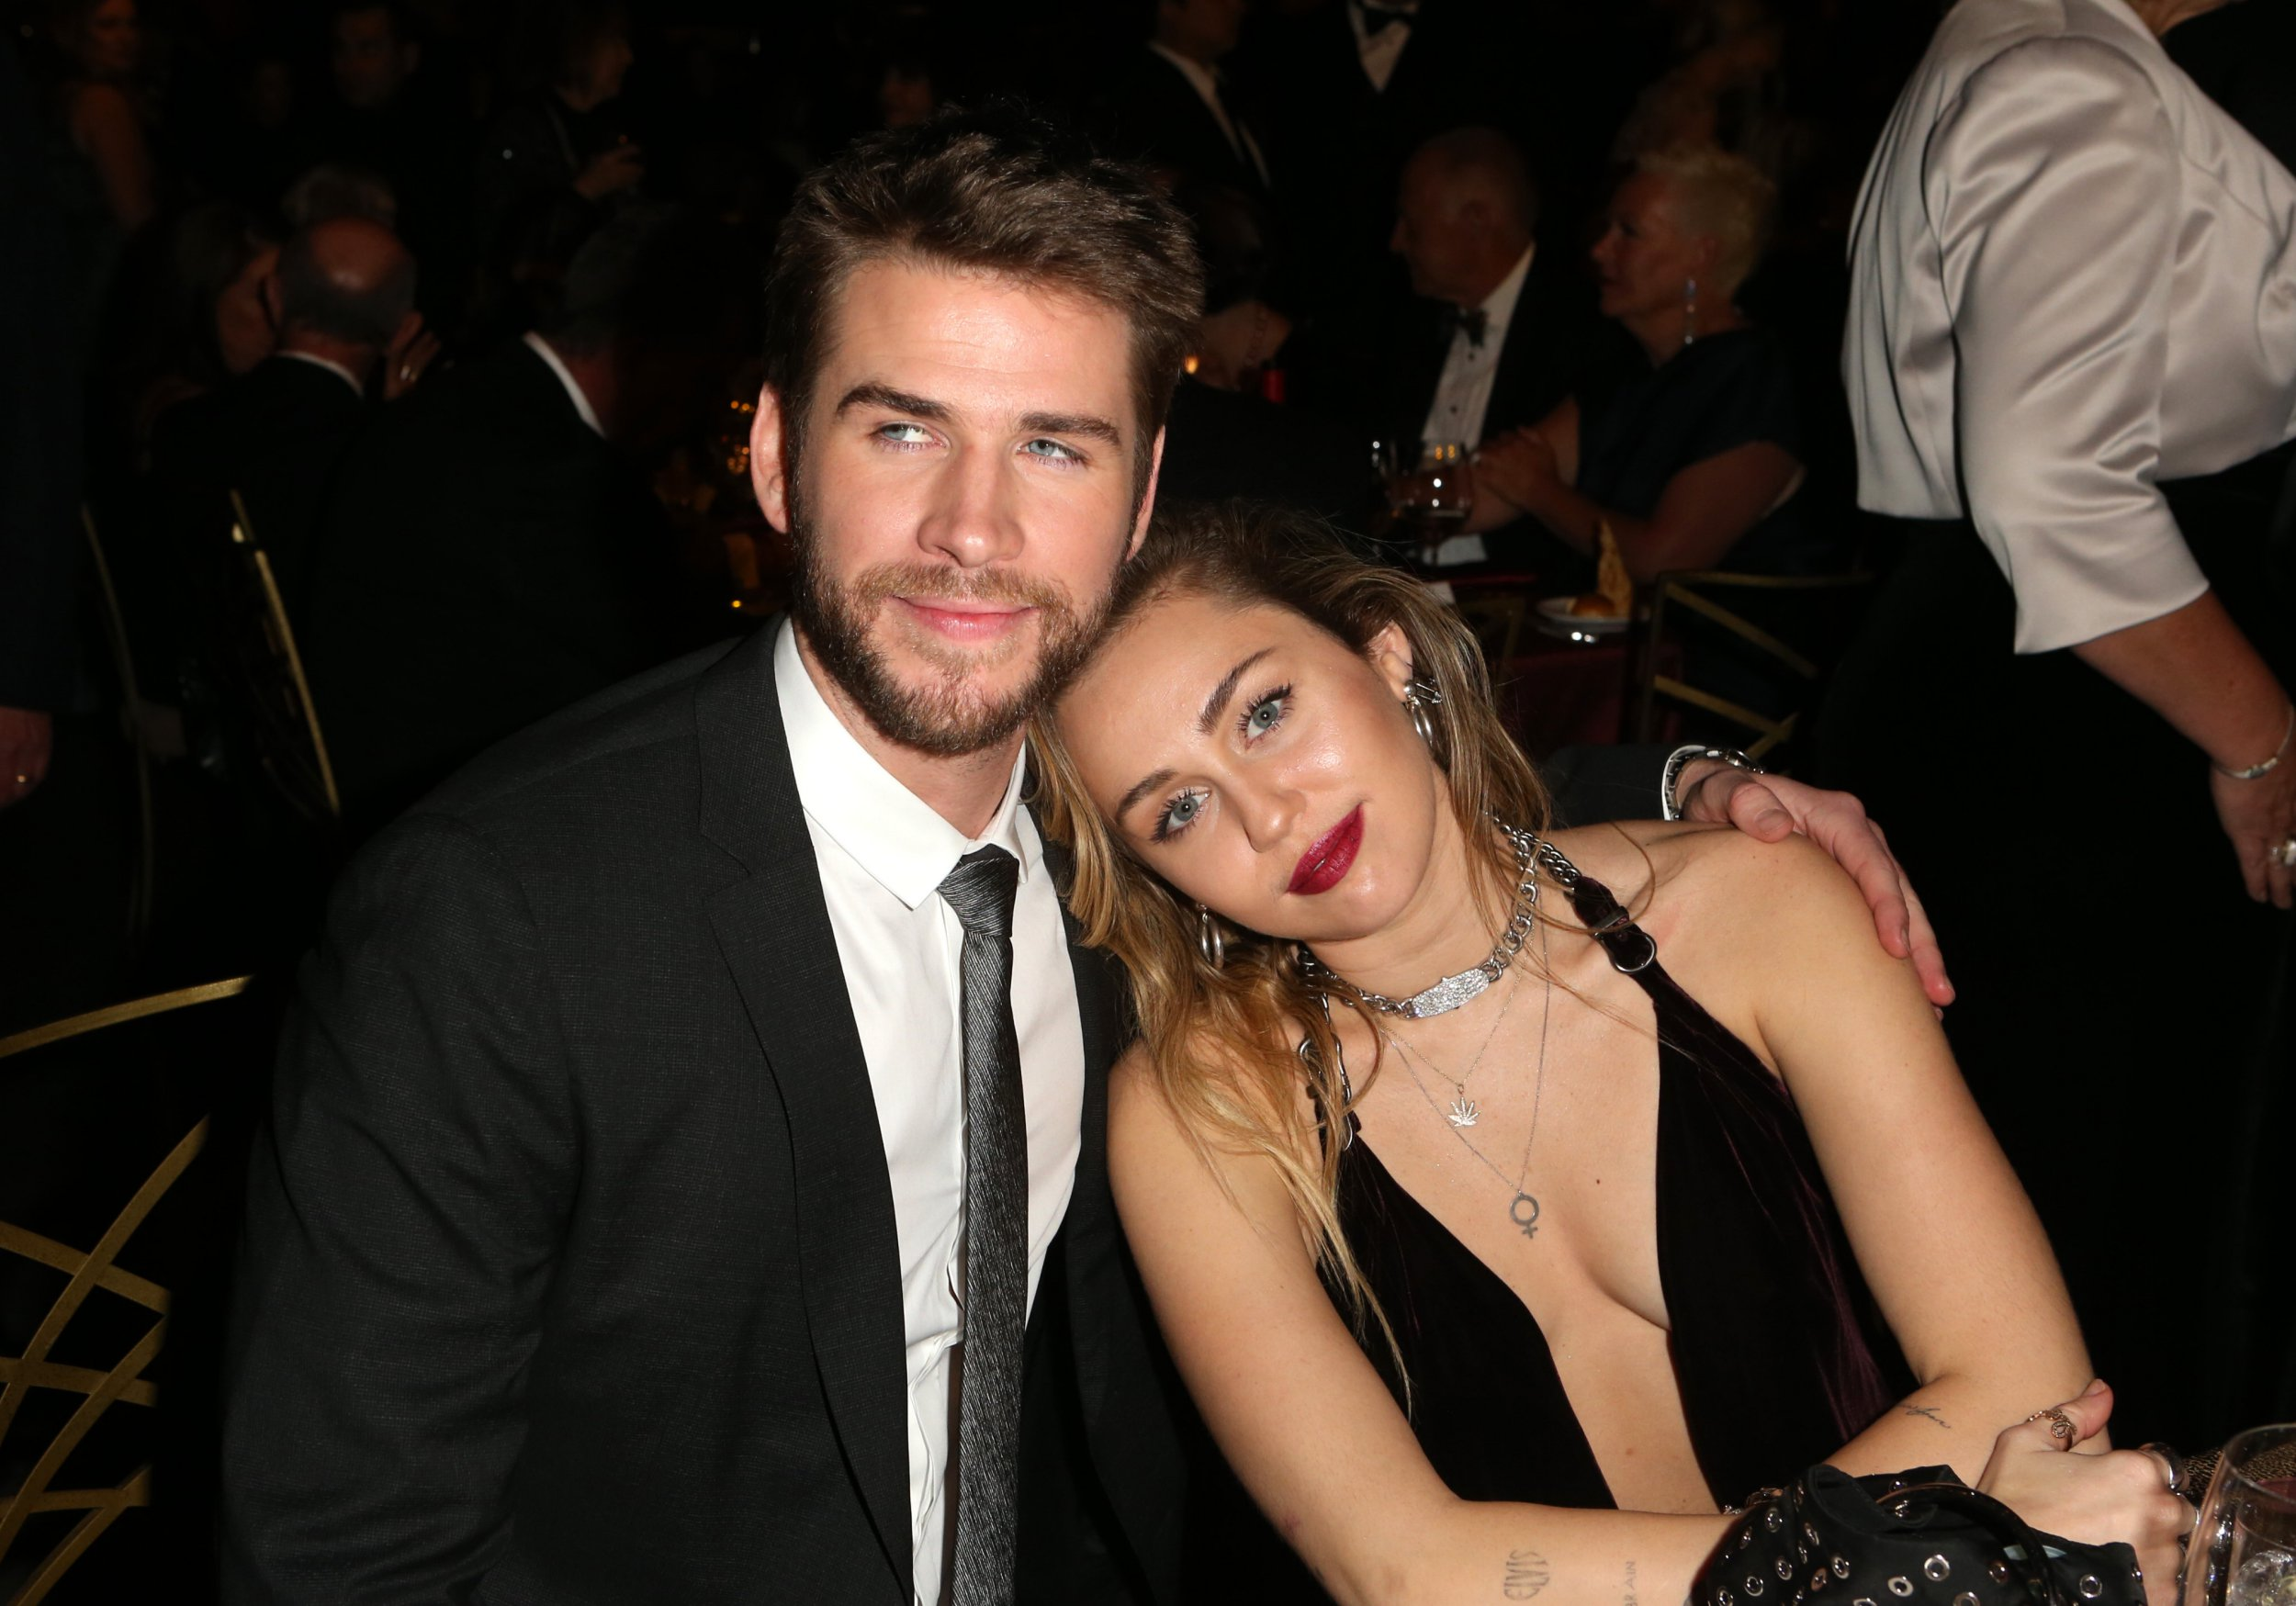 Miley Cyrus says losing her Malibu home in wildfire sparked her decision to get married